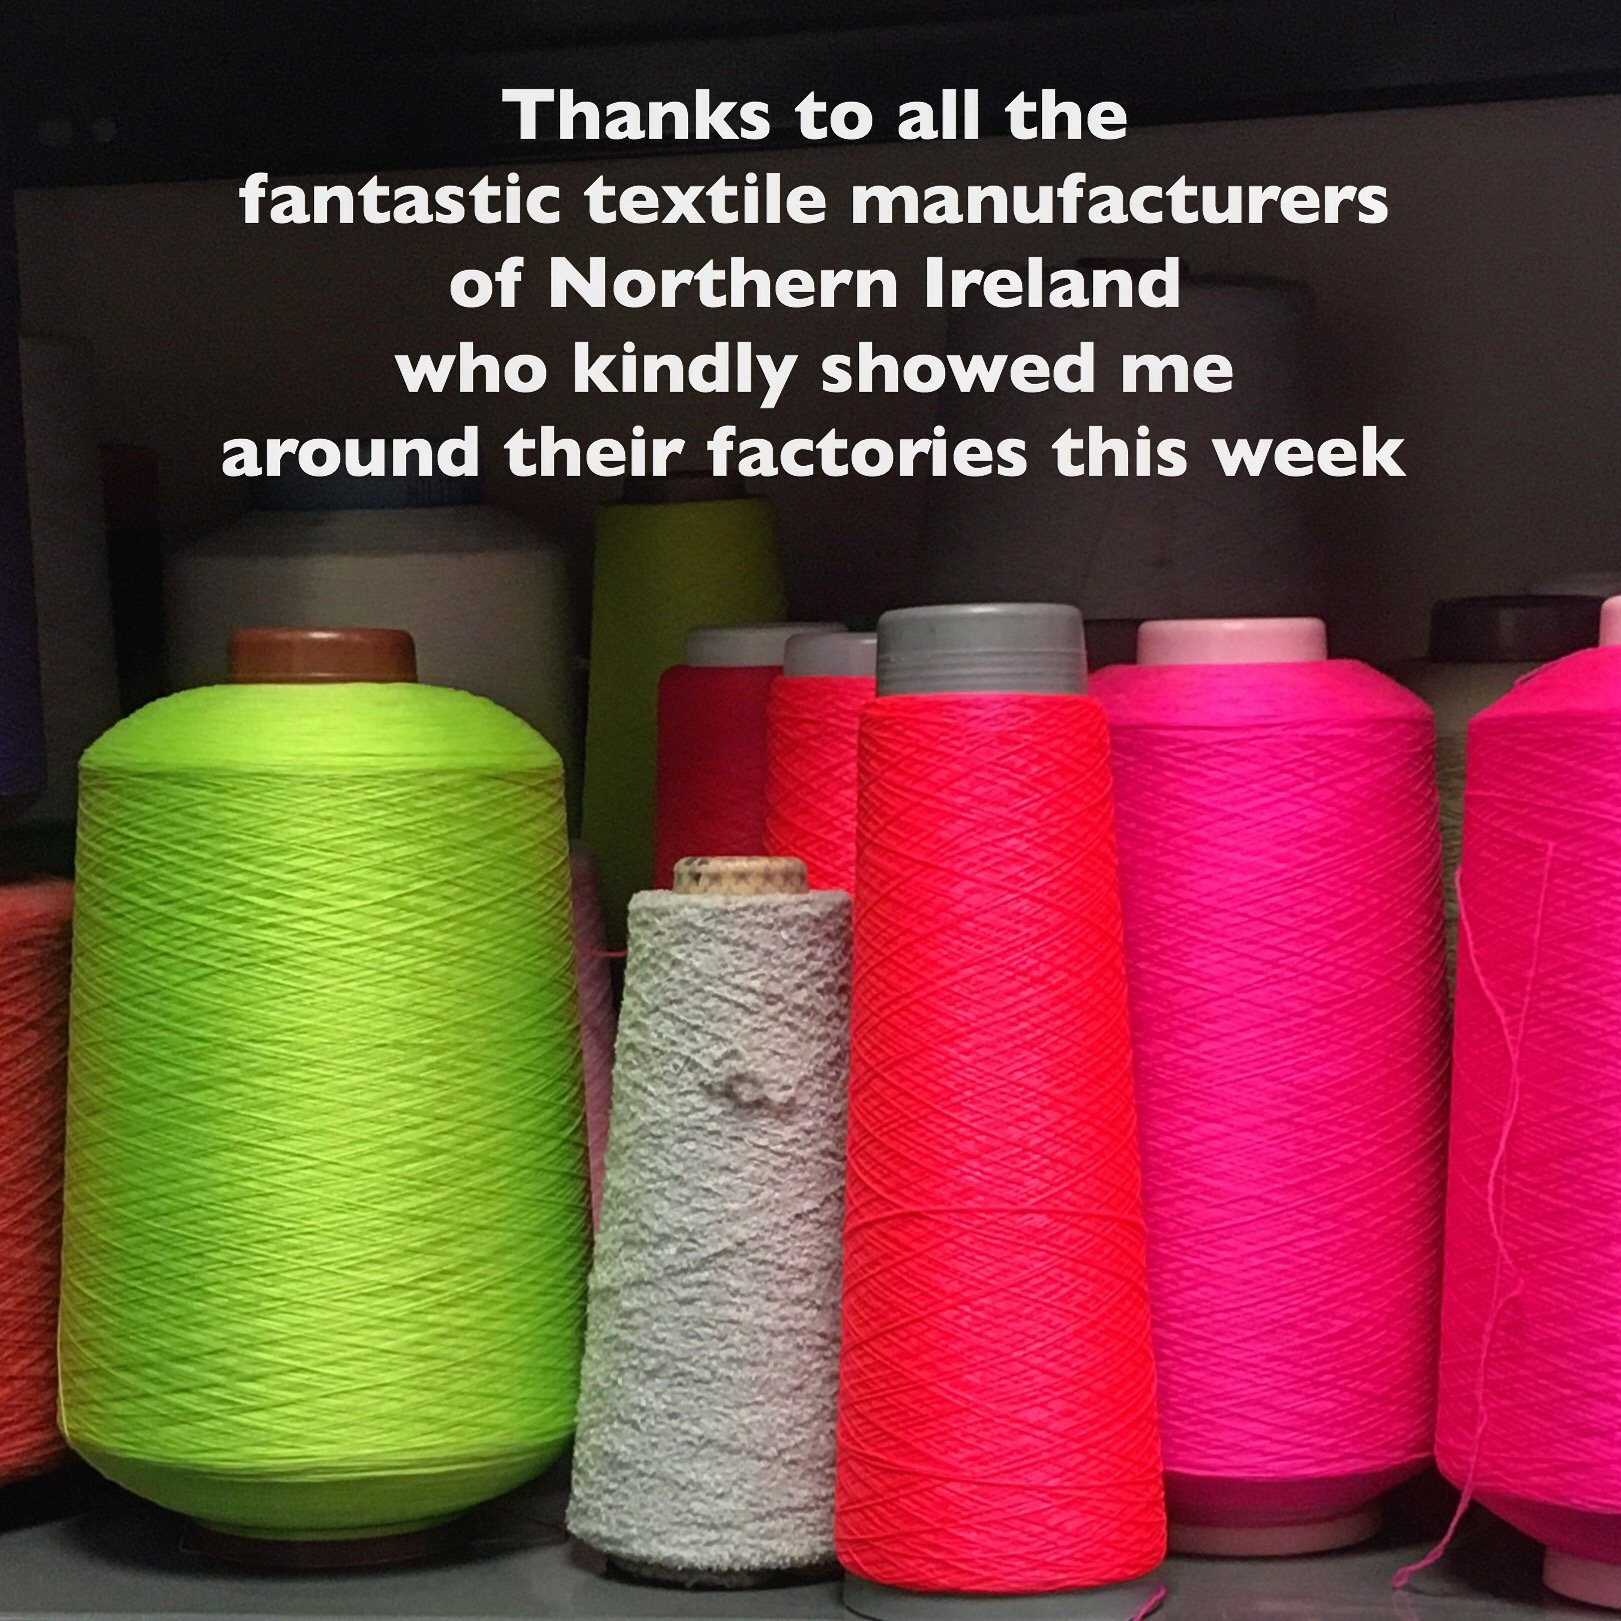 The Irish linen industry and my textiles tour of Northern Ireland